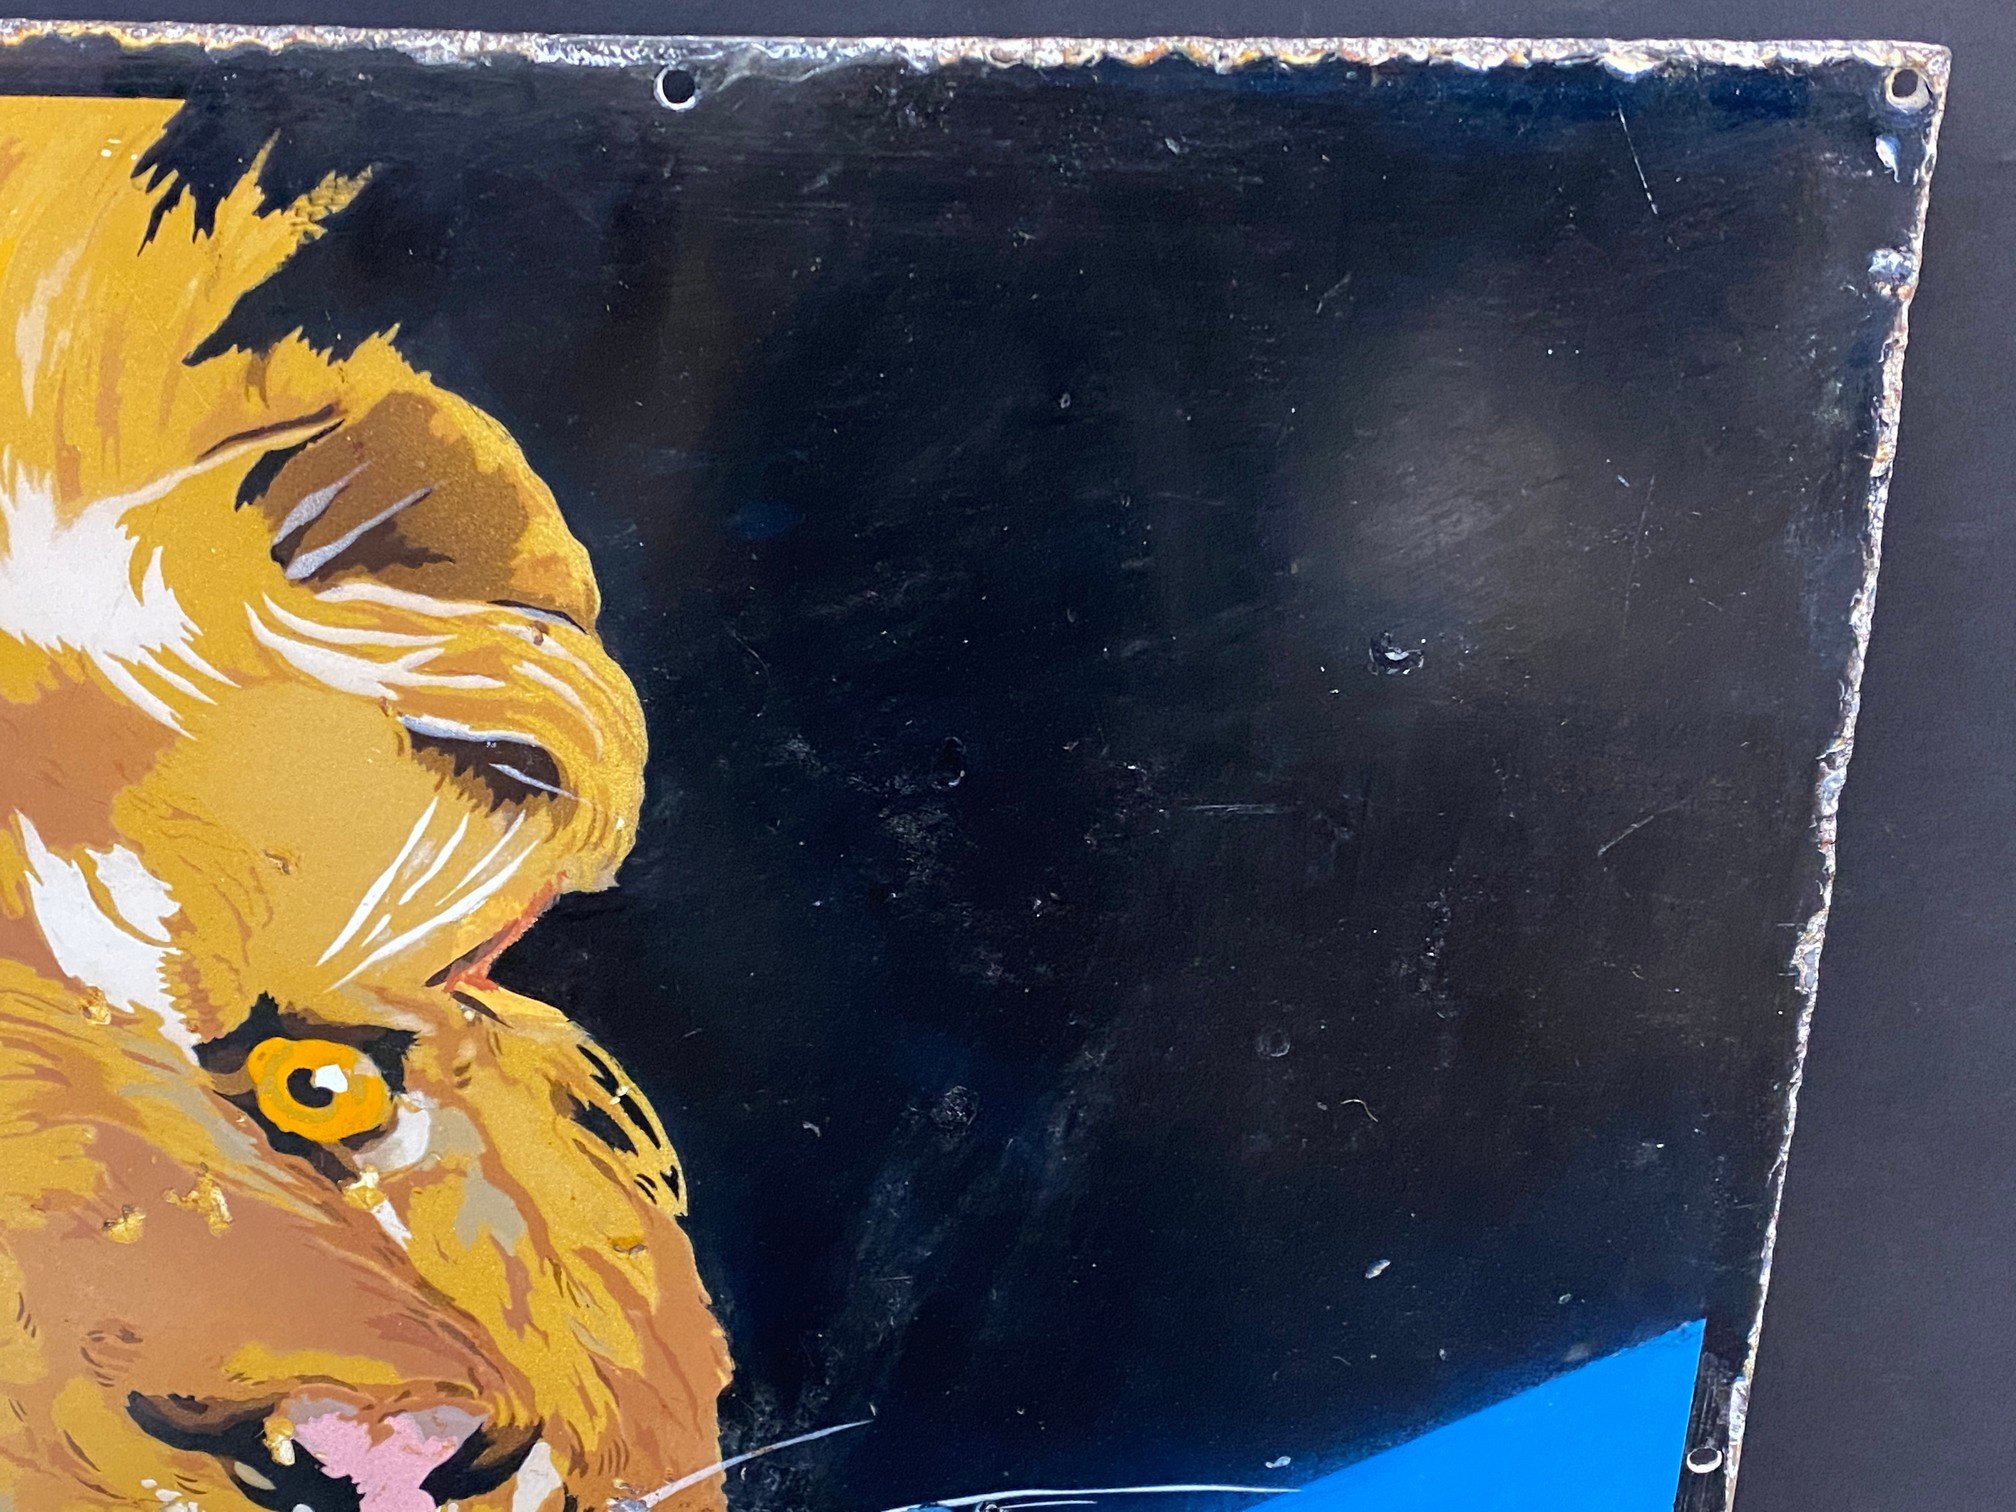 A Royal 'Ediswan' pictorial enamel sign depicting a lion's head, with a bulb in his mouth, restored, - Image 3 of 7